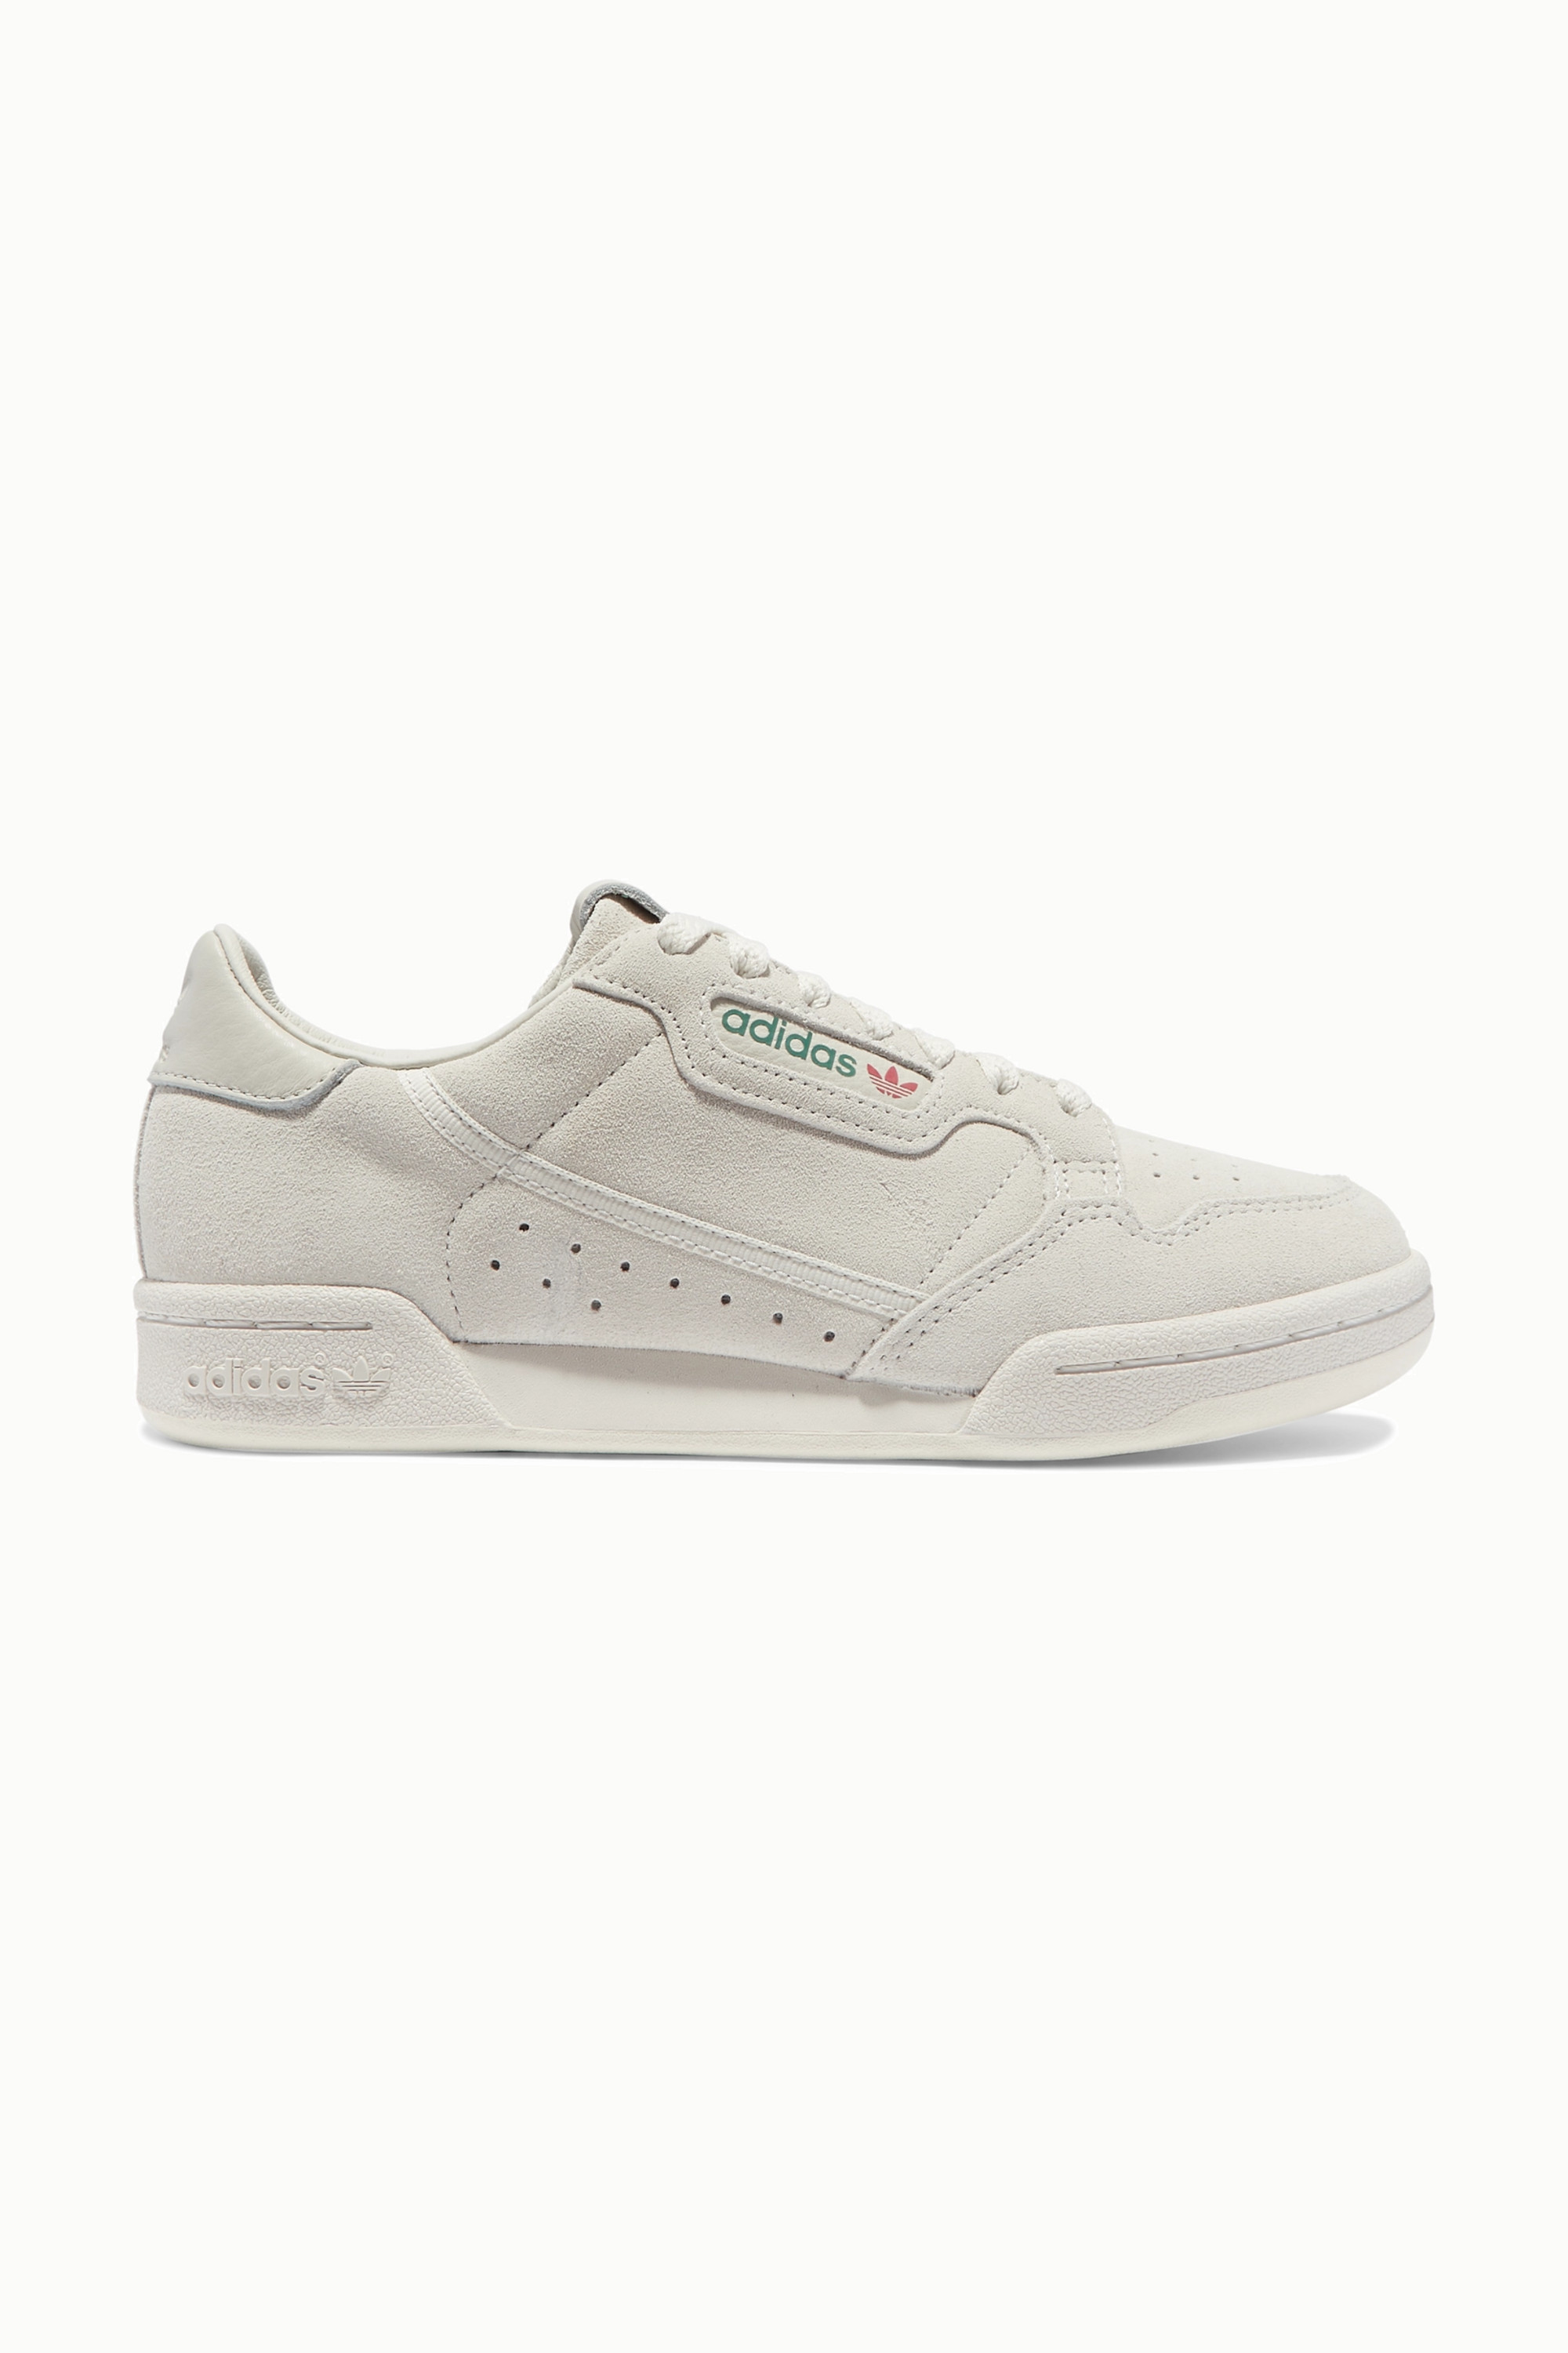 Off-white Continental 80 leather